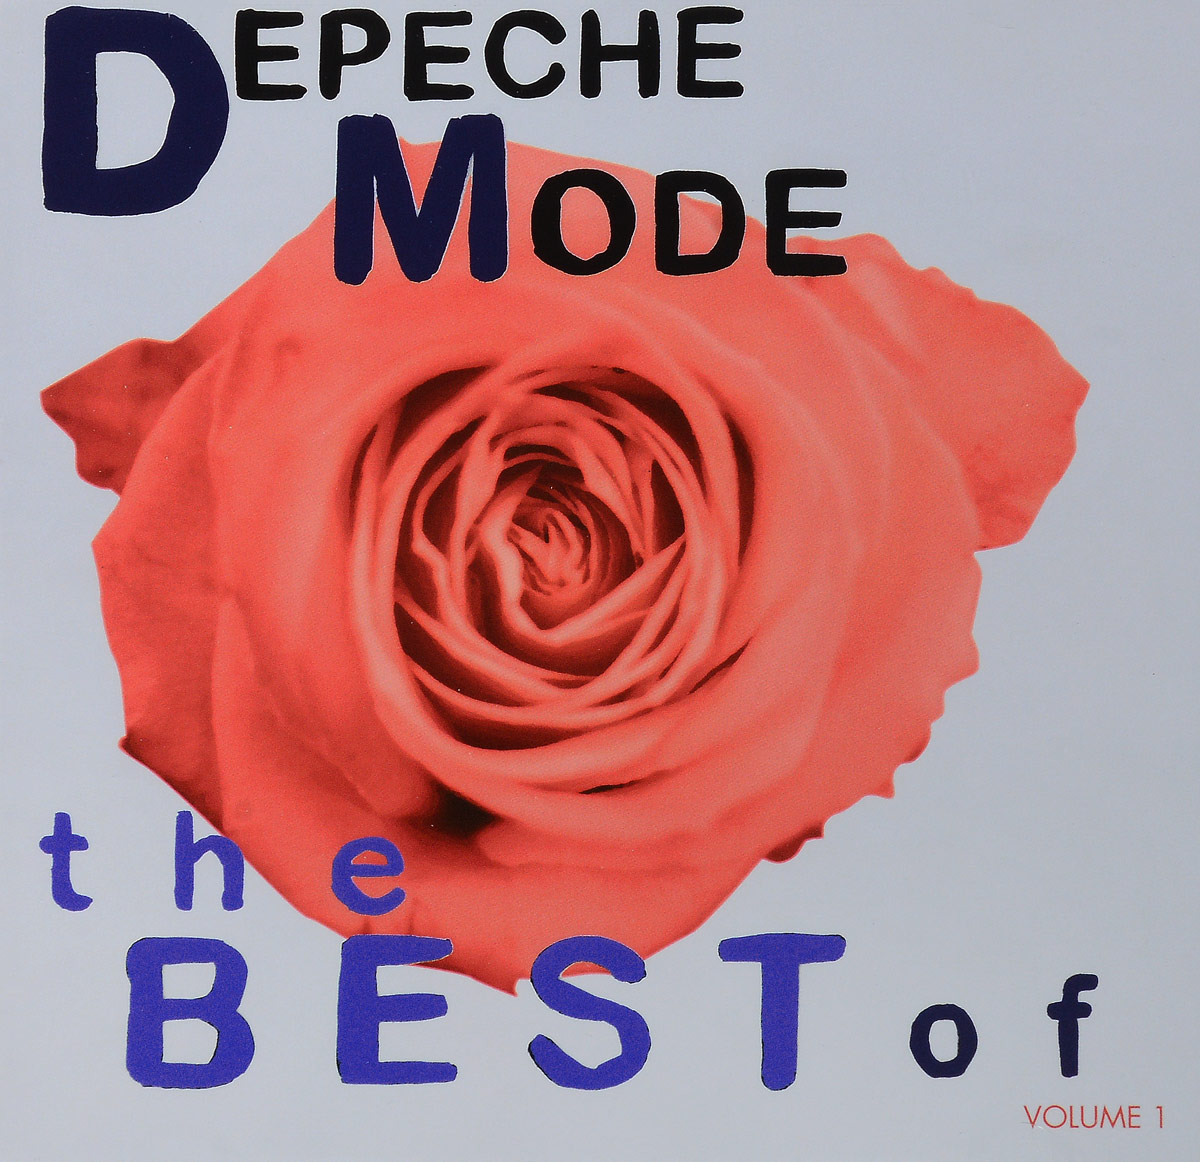 Depeche Mode Depeche Mode. The Best Of Depeche Mode. Vol. 1 (CD + DVD) johnny o rookie severin jayda soft touch лила грейс roxanna shineaz junior tiara suga mama x on jaylez maximnoise ники дэниэлс duap mc ричи сантьяго freestyle vol 40 best of final edition 3 cd